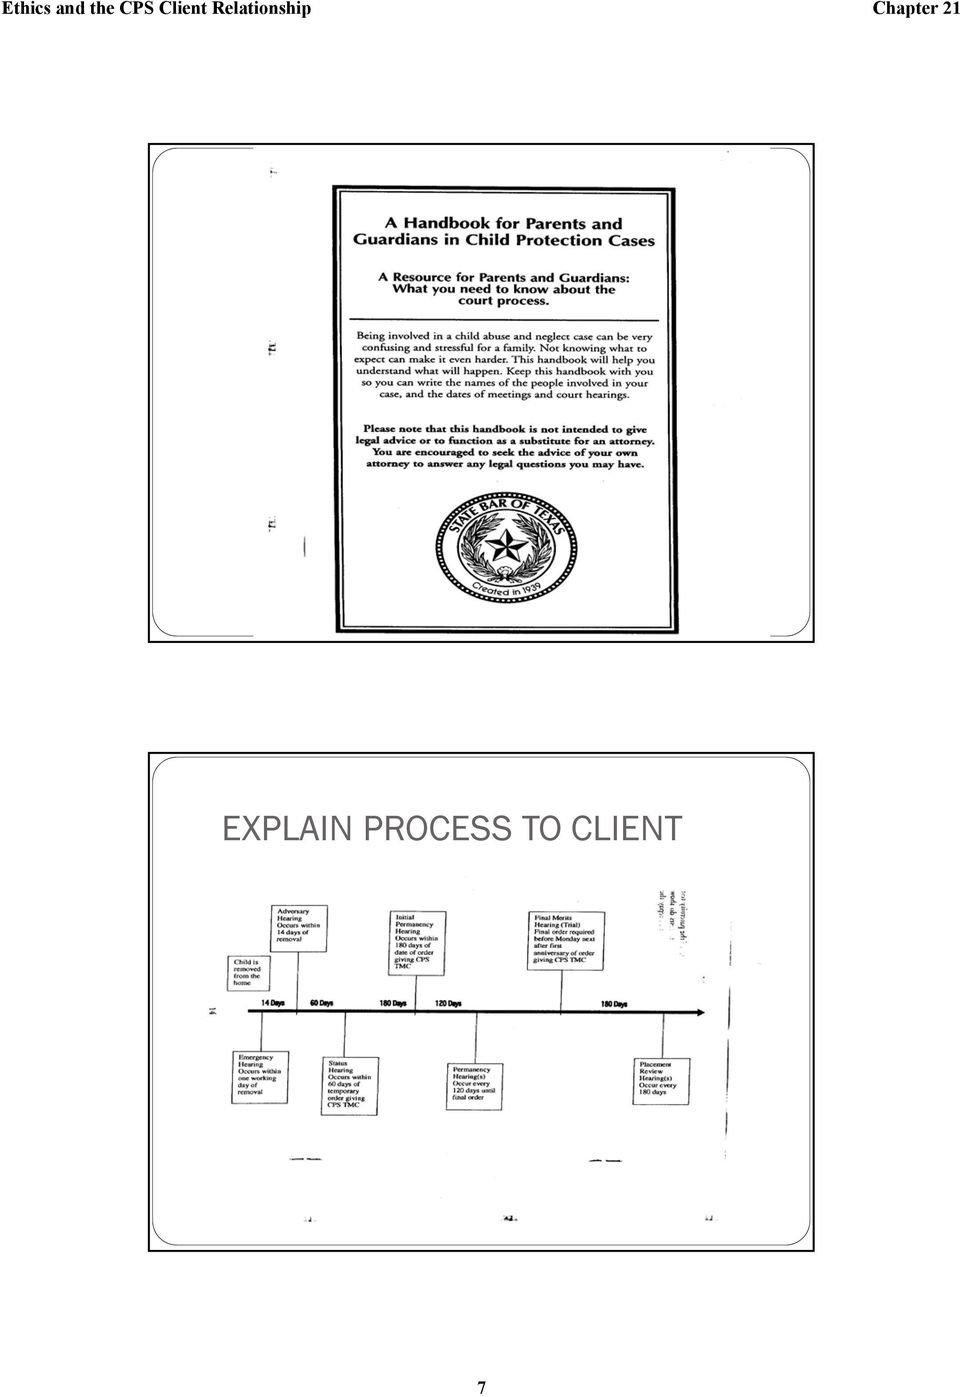 ETHICS AND THE CPS CLIENT RELATIONSHIP - PDF